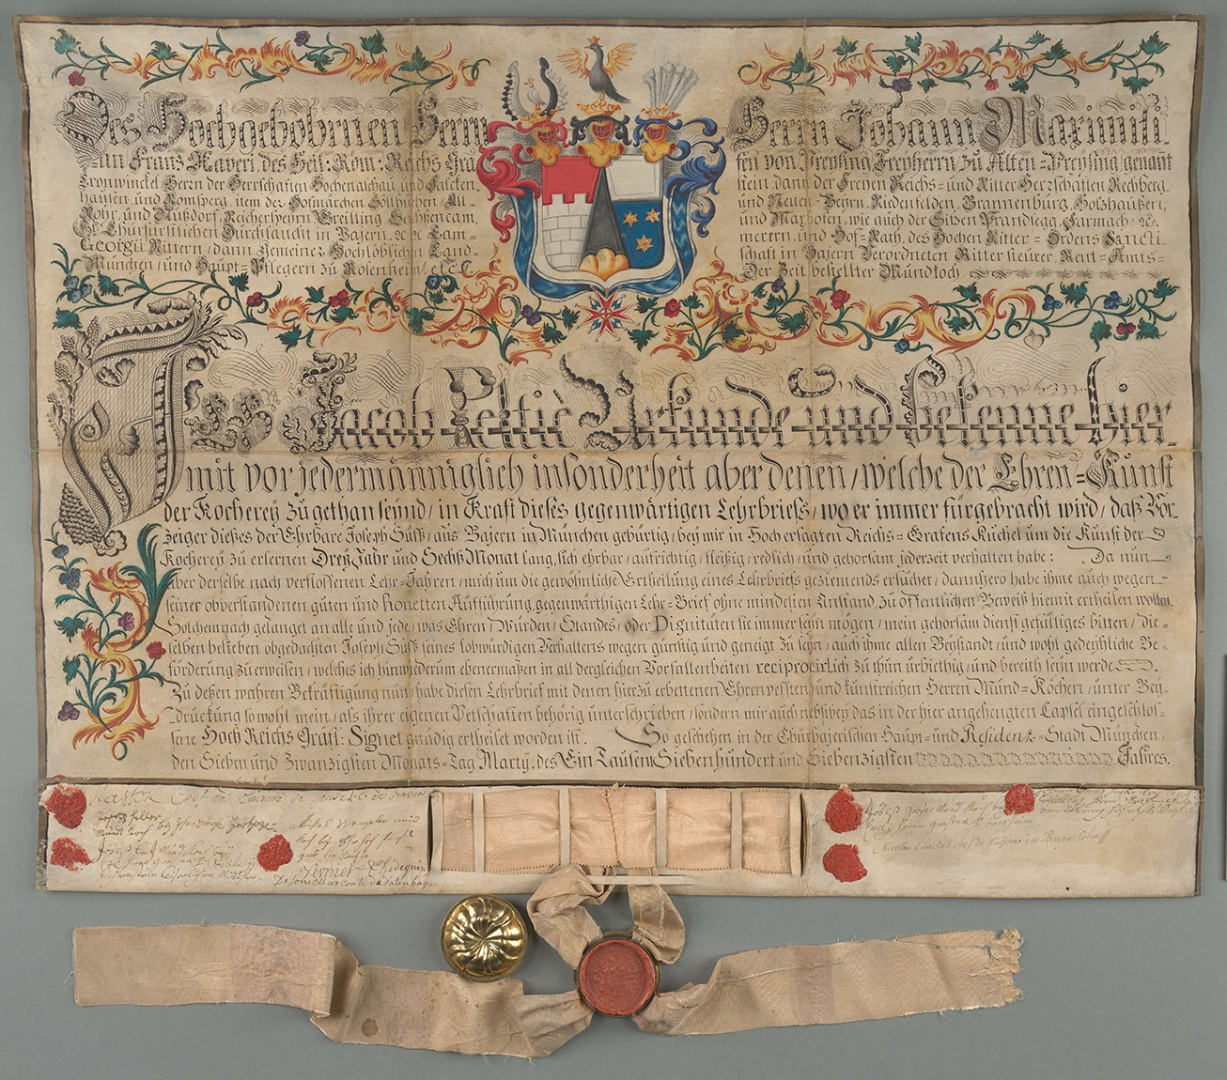 fig 9. Cookery journeyman's certificate issued to Joseph Süss in 1770 by Jacob Peltie, the chef of  Freysing Count and Old Preising Baron Johann Maximilian Franz Xaver, AM.115.2.32.